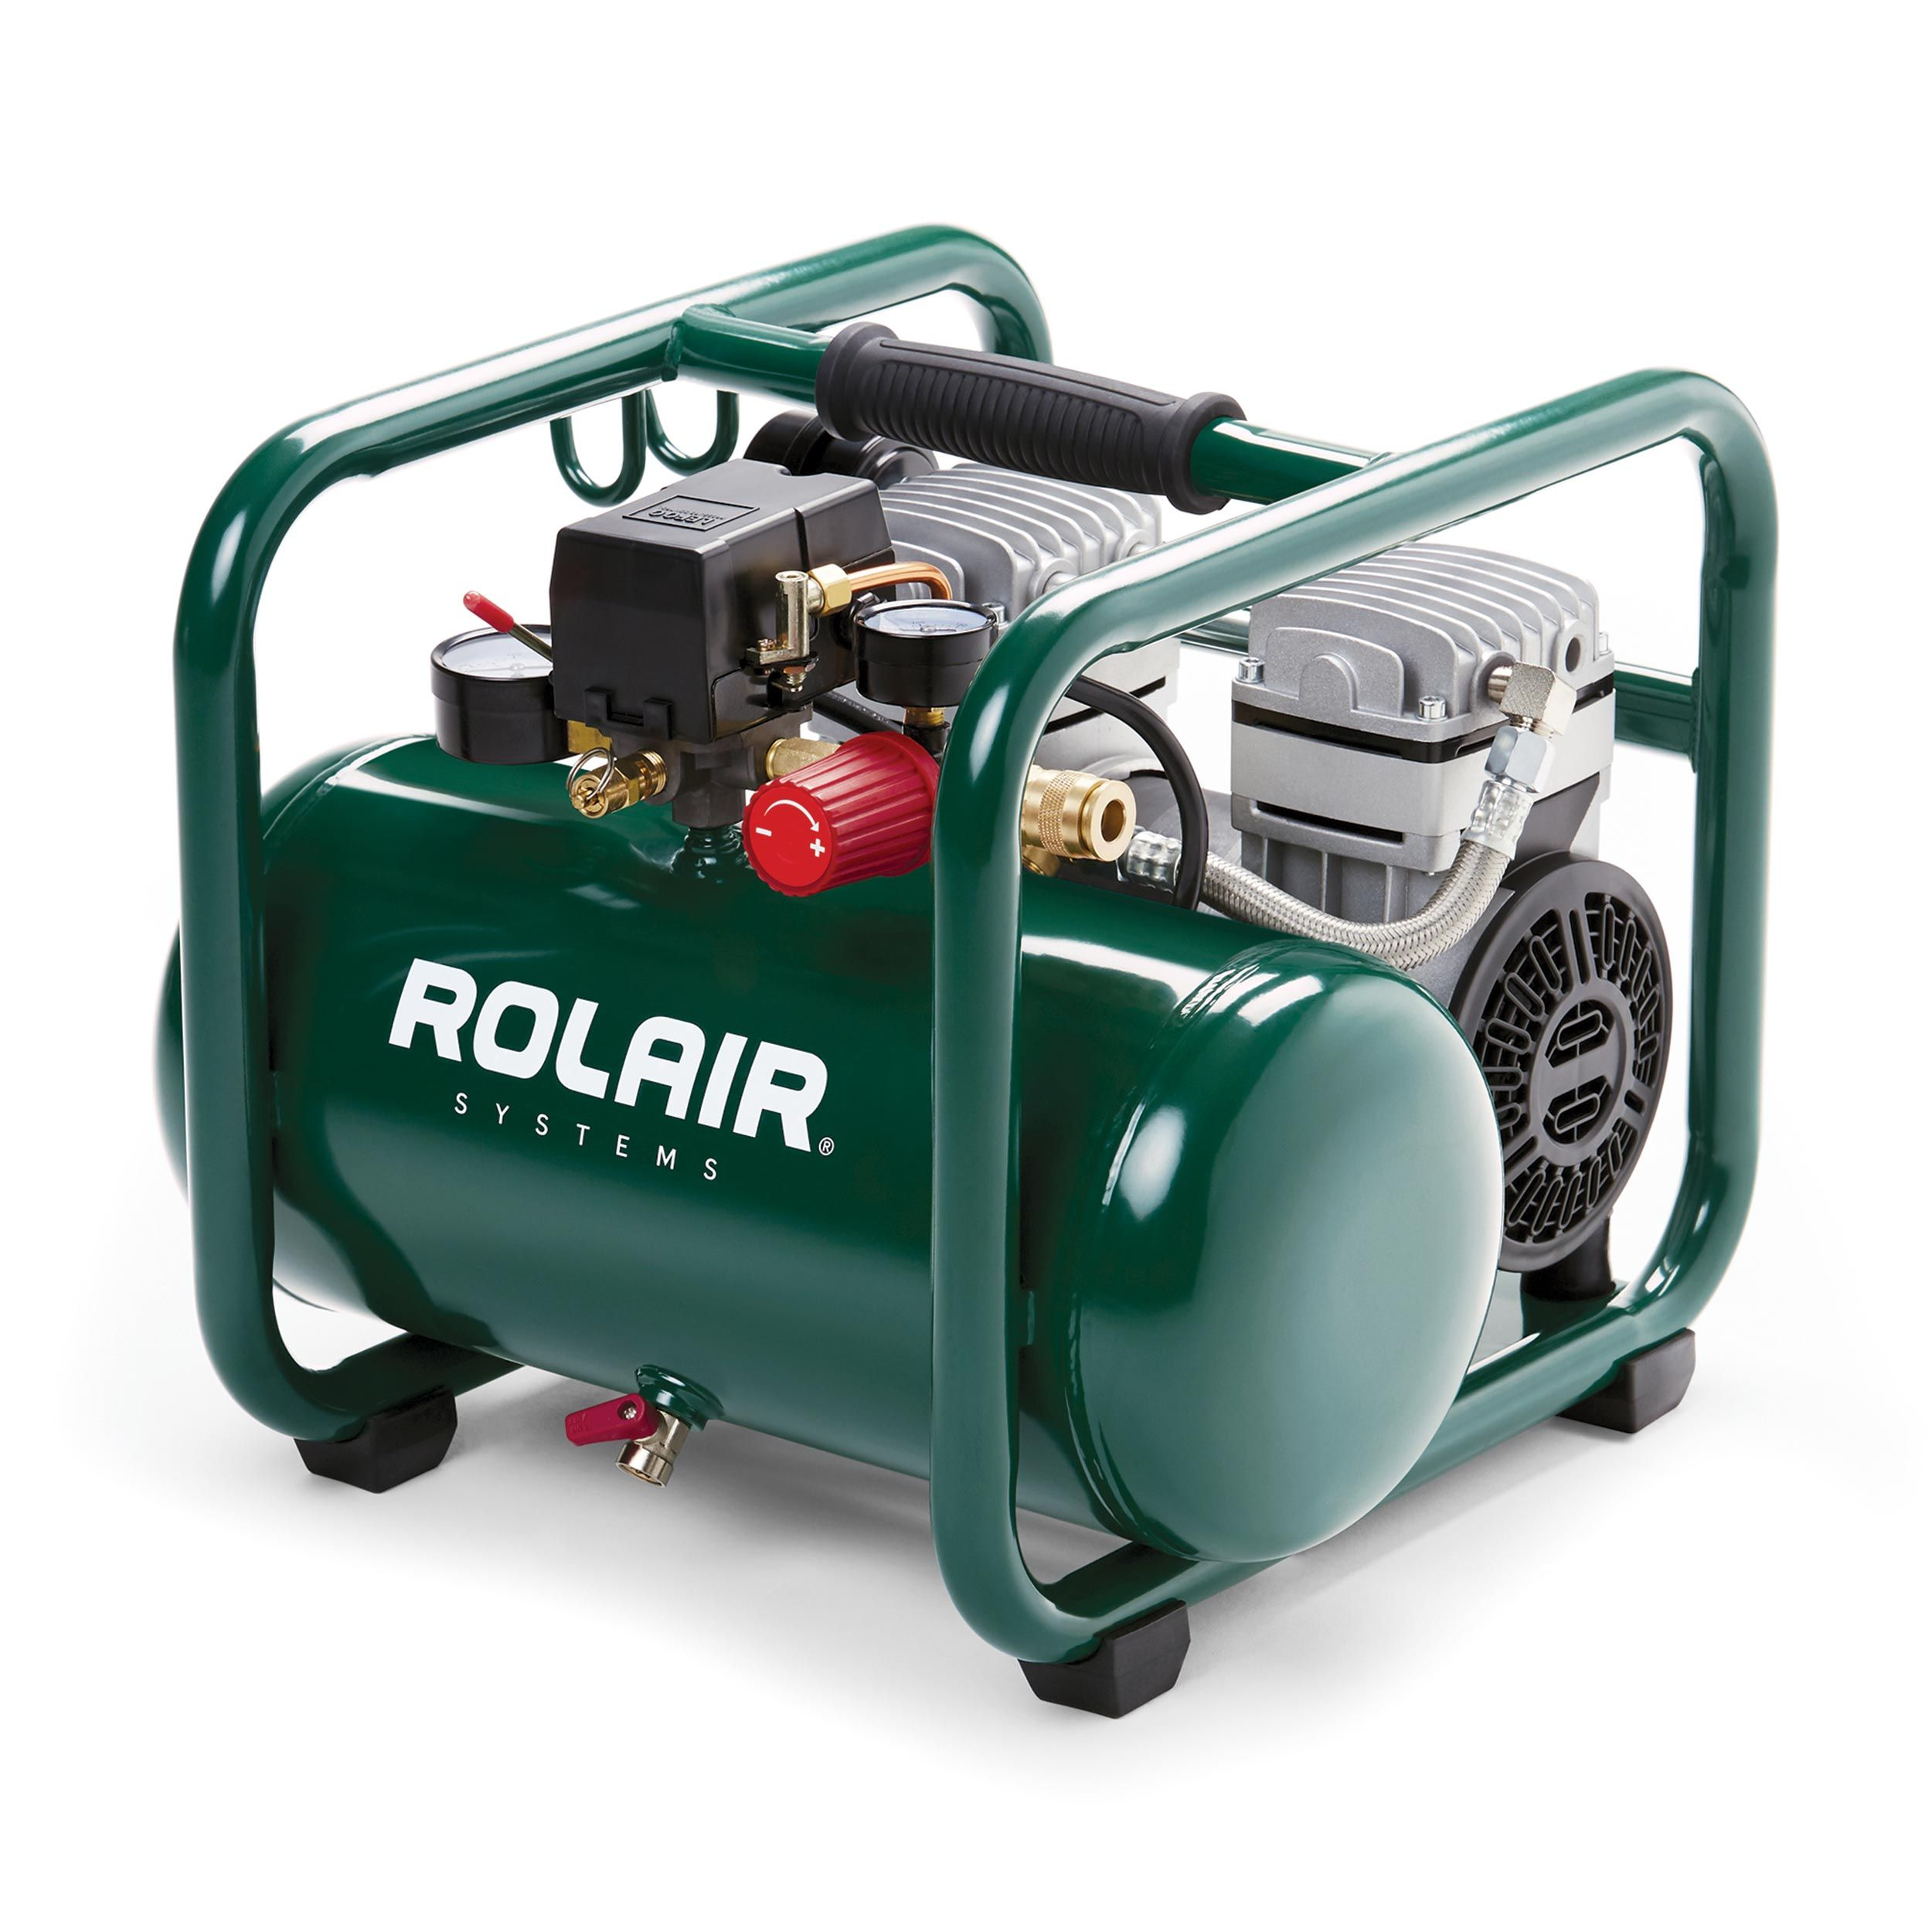 Rolair Systems Rolair JC10PLUS 1 HP, 2.5Gallon Oilless